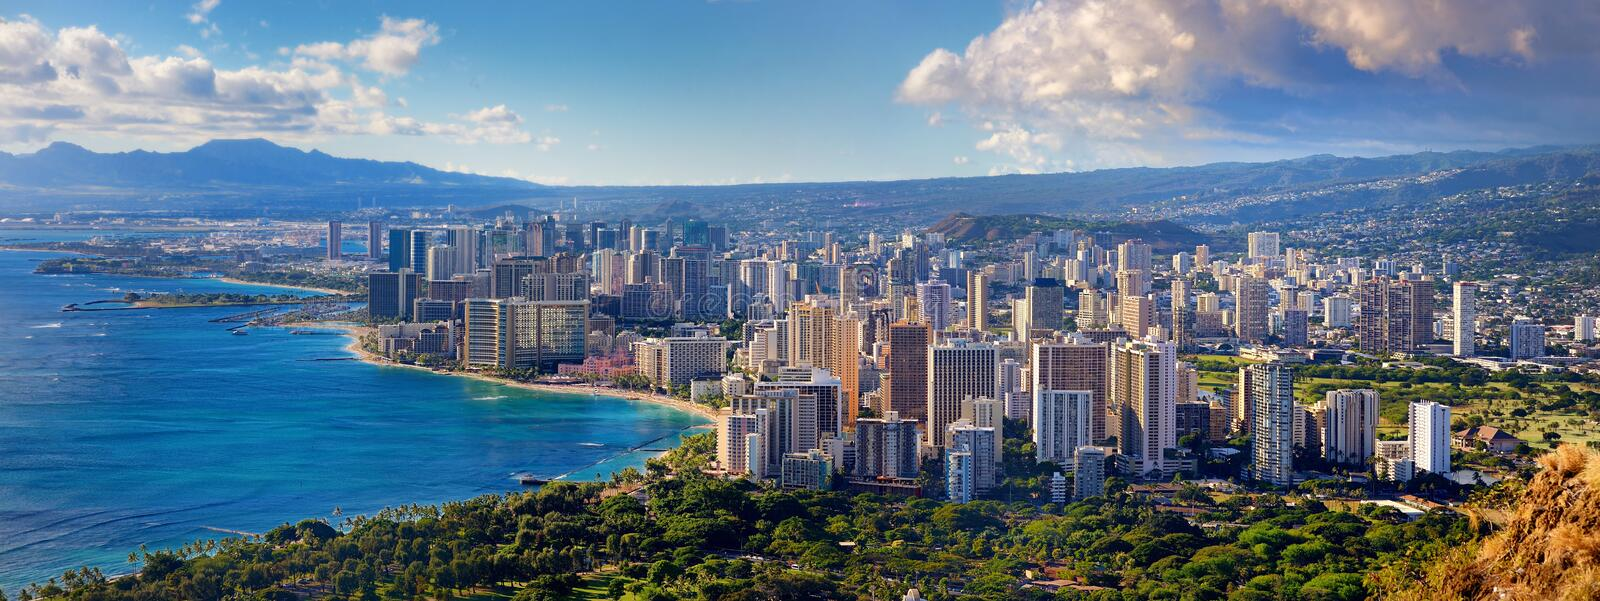 Spectacular view of Honolulu city, Oahu stock photos